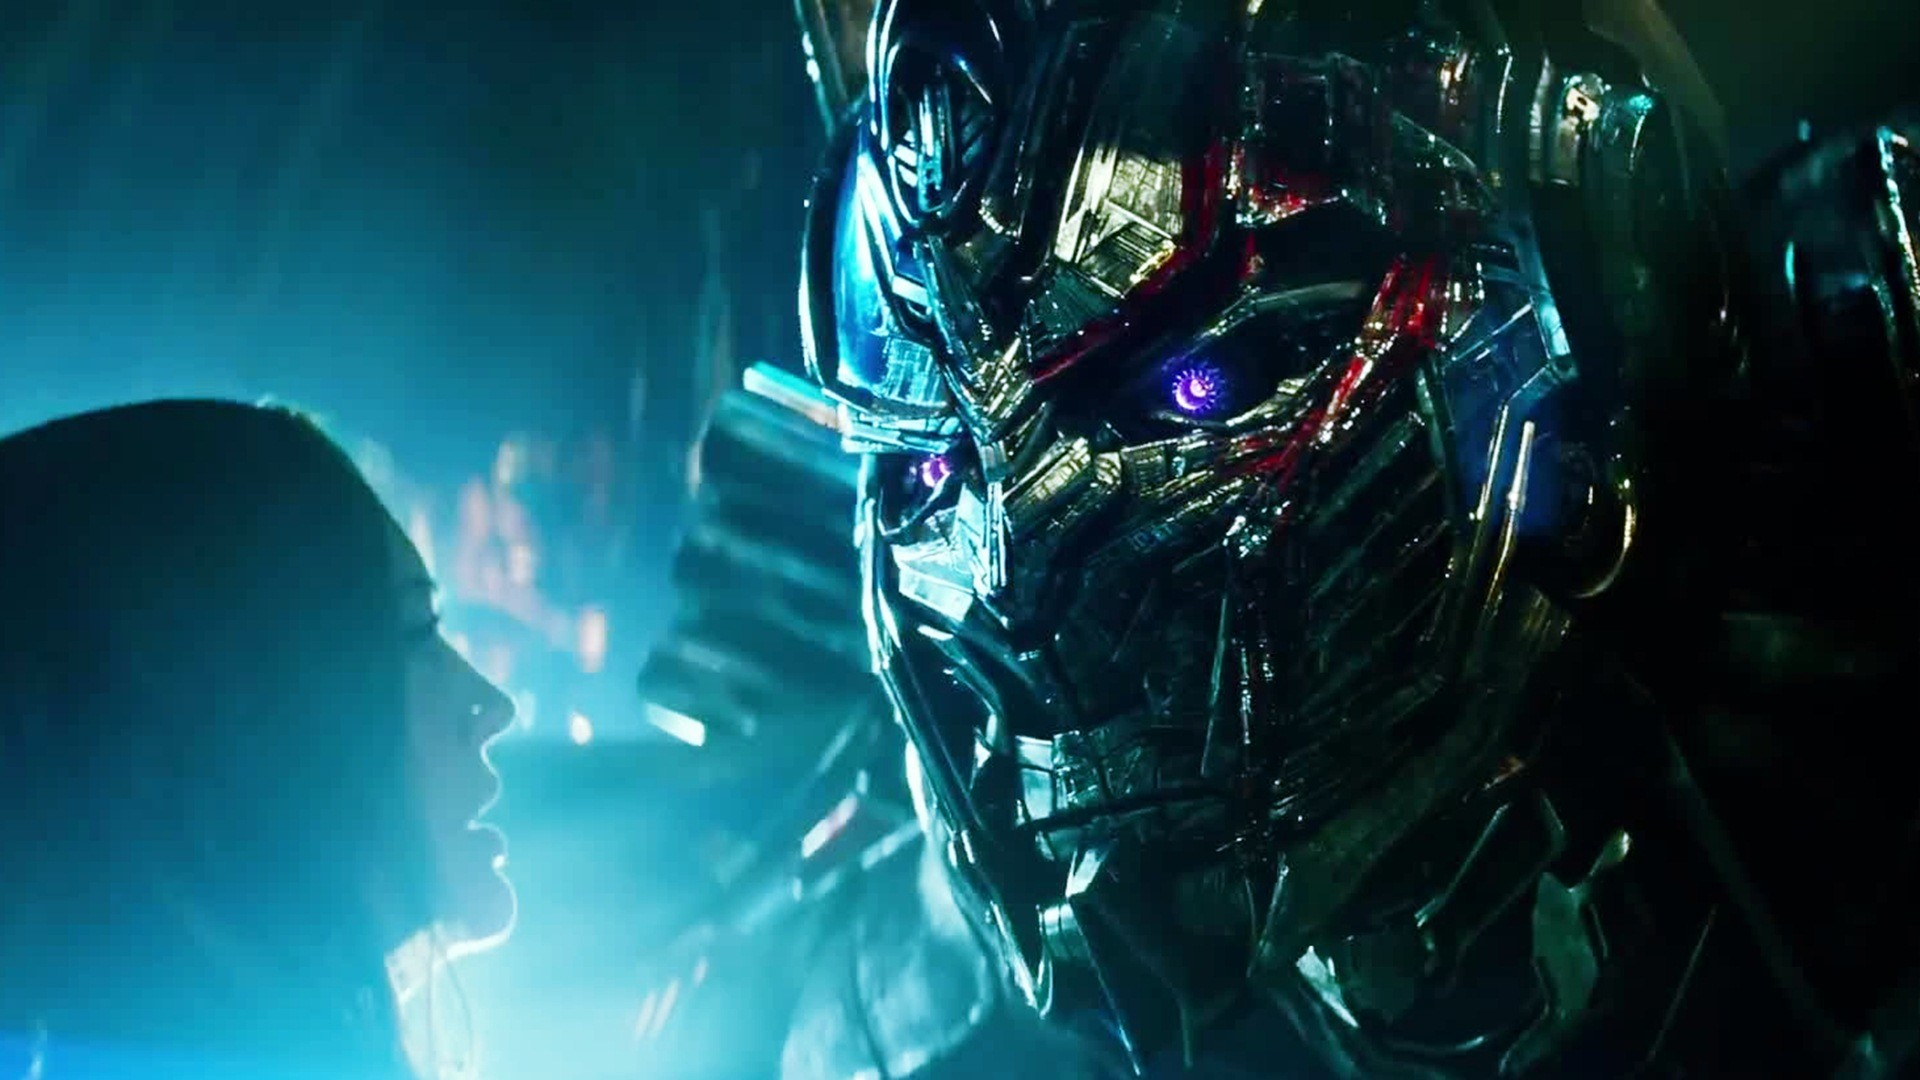 transformers photos download